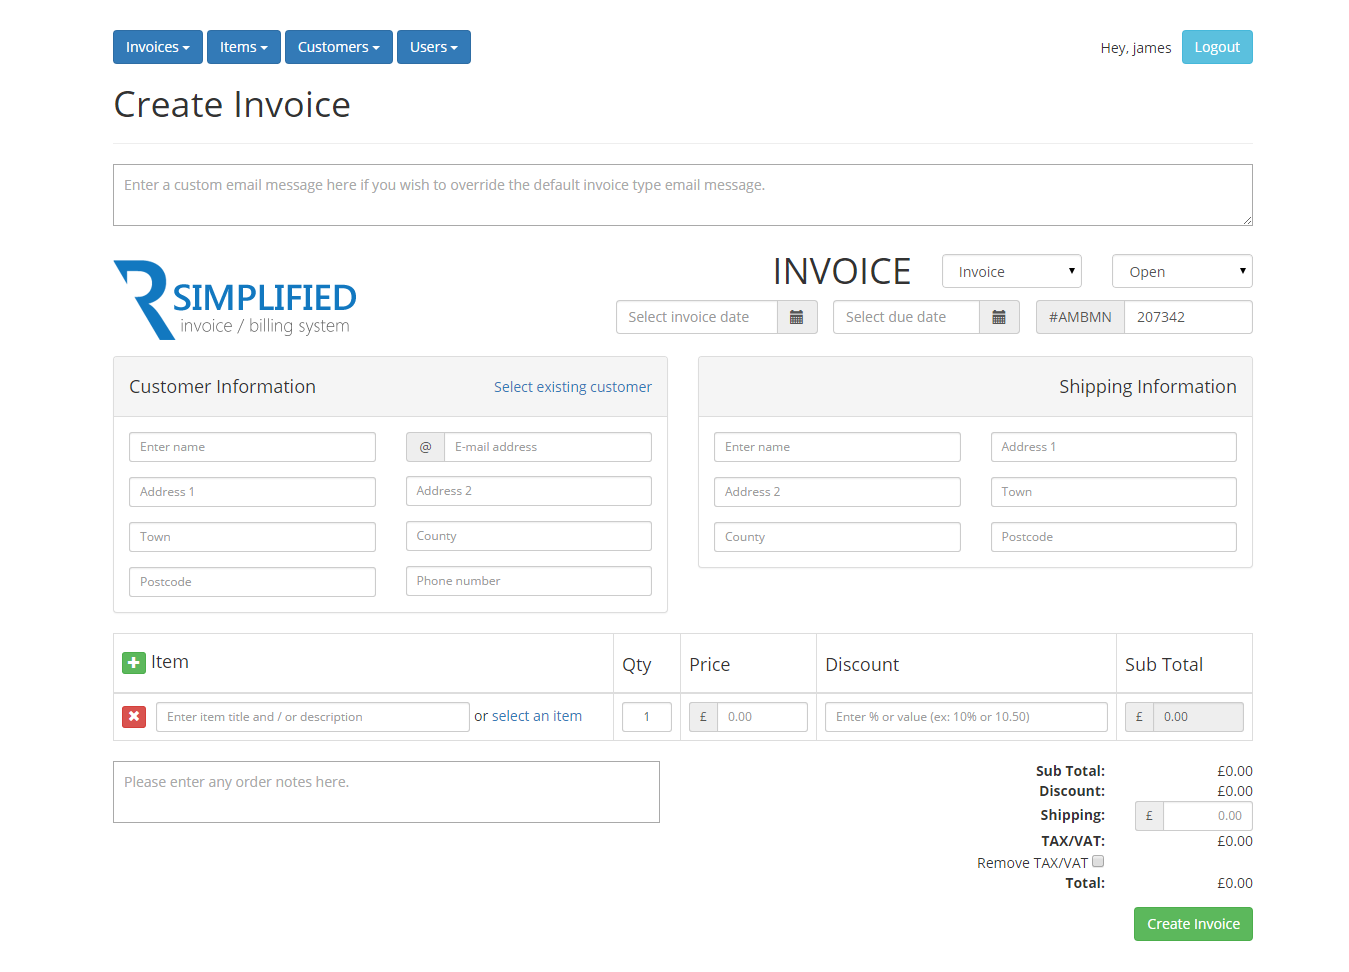 Opposenewapstandardsus  Mesmerizing Simplified Php Invoice  Billing System By Rebootdigitaluk  With Marvelous  Createinvoicepng  With Astonishing Late Invoices Also Invoice Type In Addition Blank Invoice Template Microsoft And How To Get Invoice Price On A New Car As Well As Free Invoice Templates Download Additionally Bill Invoice Sample From Codecanyonnet With Opposenewapstandardsus  Marvelous Simplified Php Invoice  Billing System By Rebootdigitaluk  With Astonishing  Createinvoicepng  And Mesmerizing Late Invoices Also Invoice Type In Addition Blank Invoice Template Microsoft From Codecanyonnet